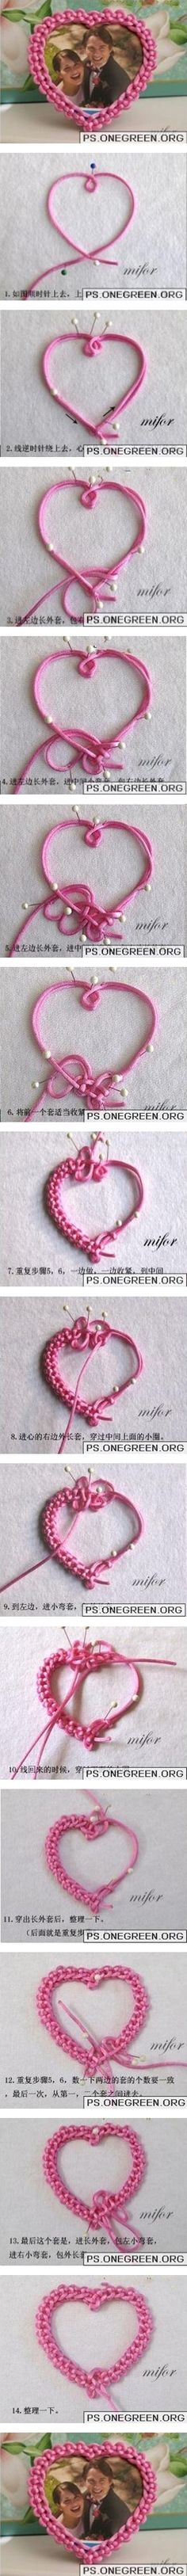 DIY Chinese Knot Heart Picture Frame